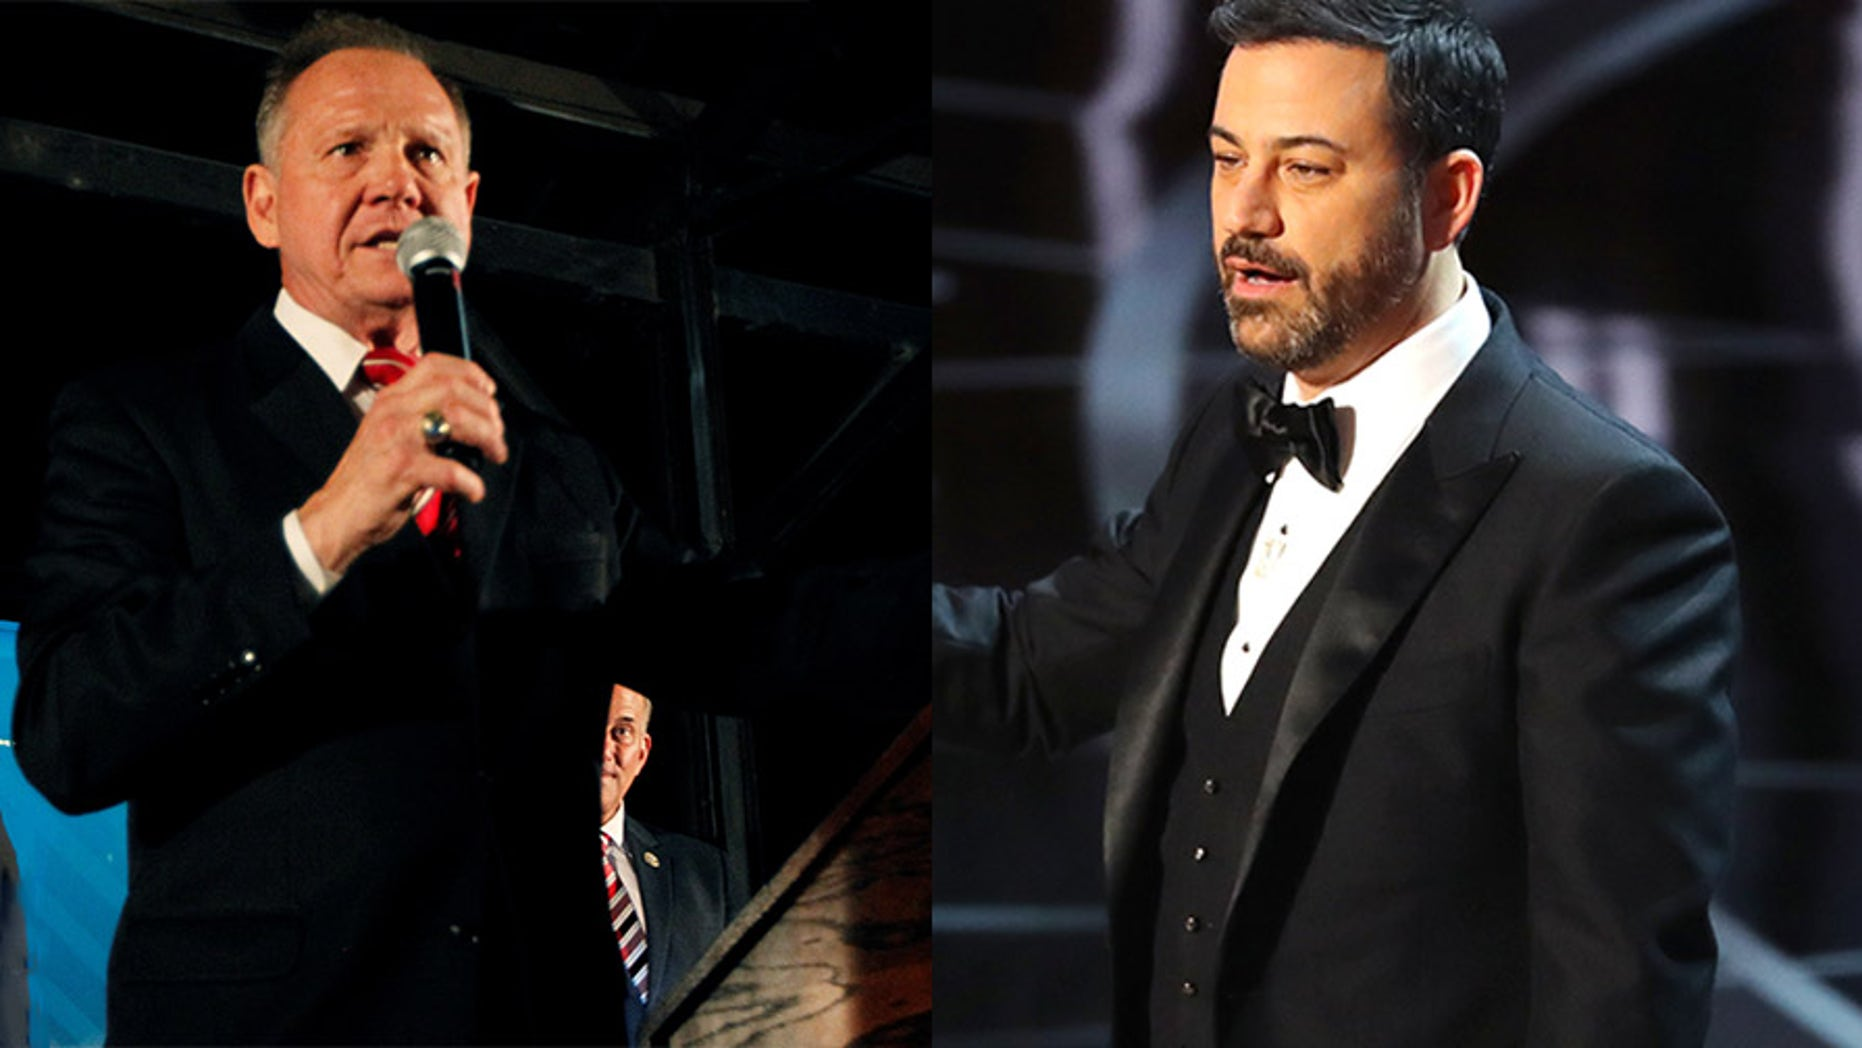 Roy Moore and Jimmy Kimmel are dueling over a stunt at a Baptist church in Alabama.